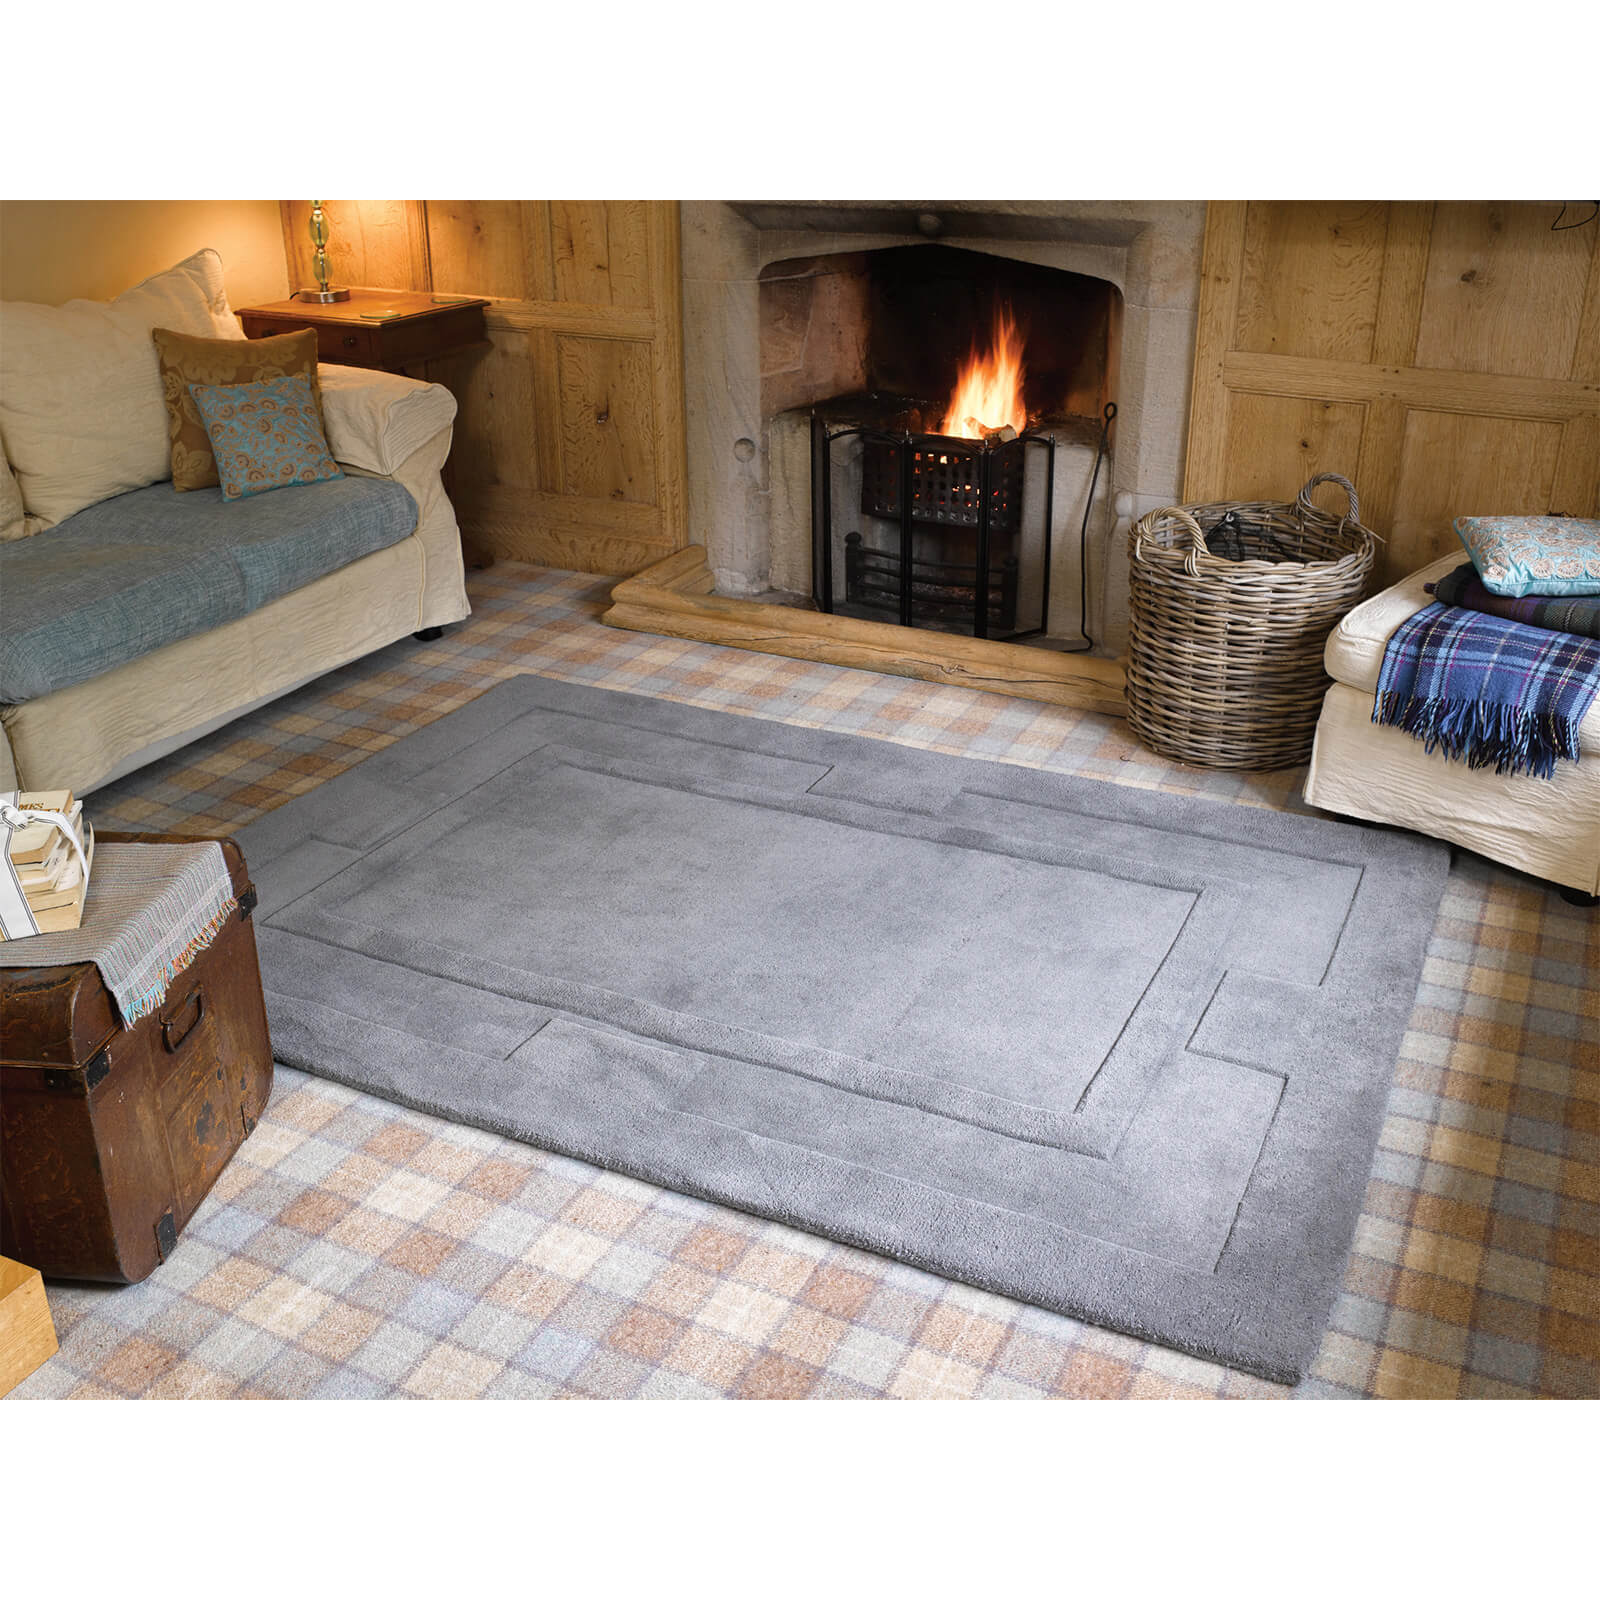 Flair Sierra Apollo Rug - Grey